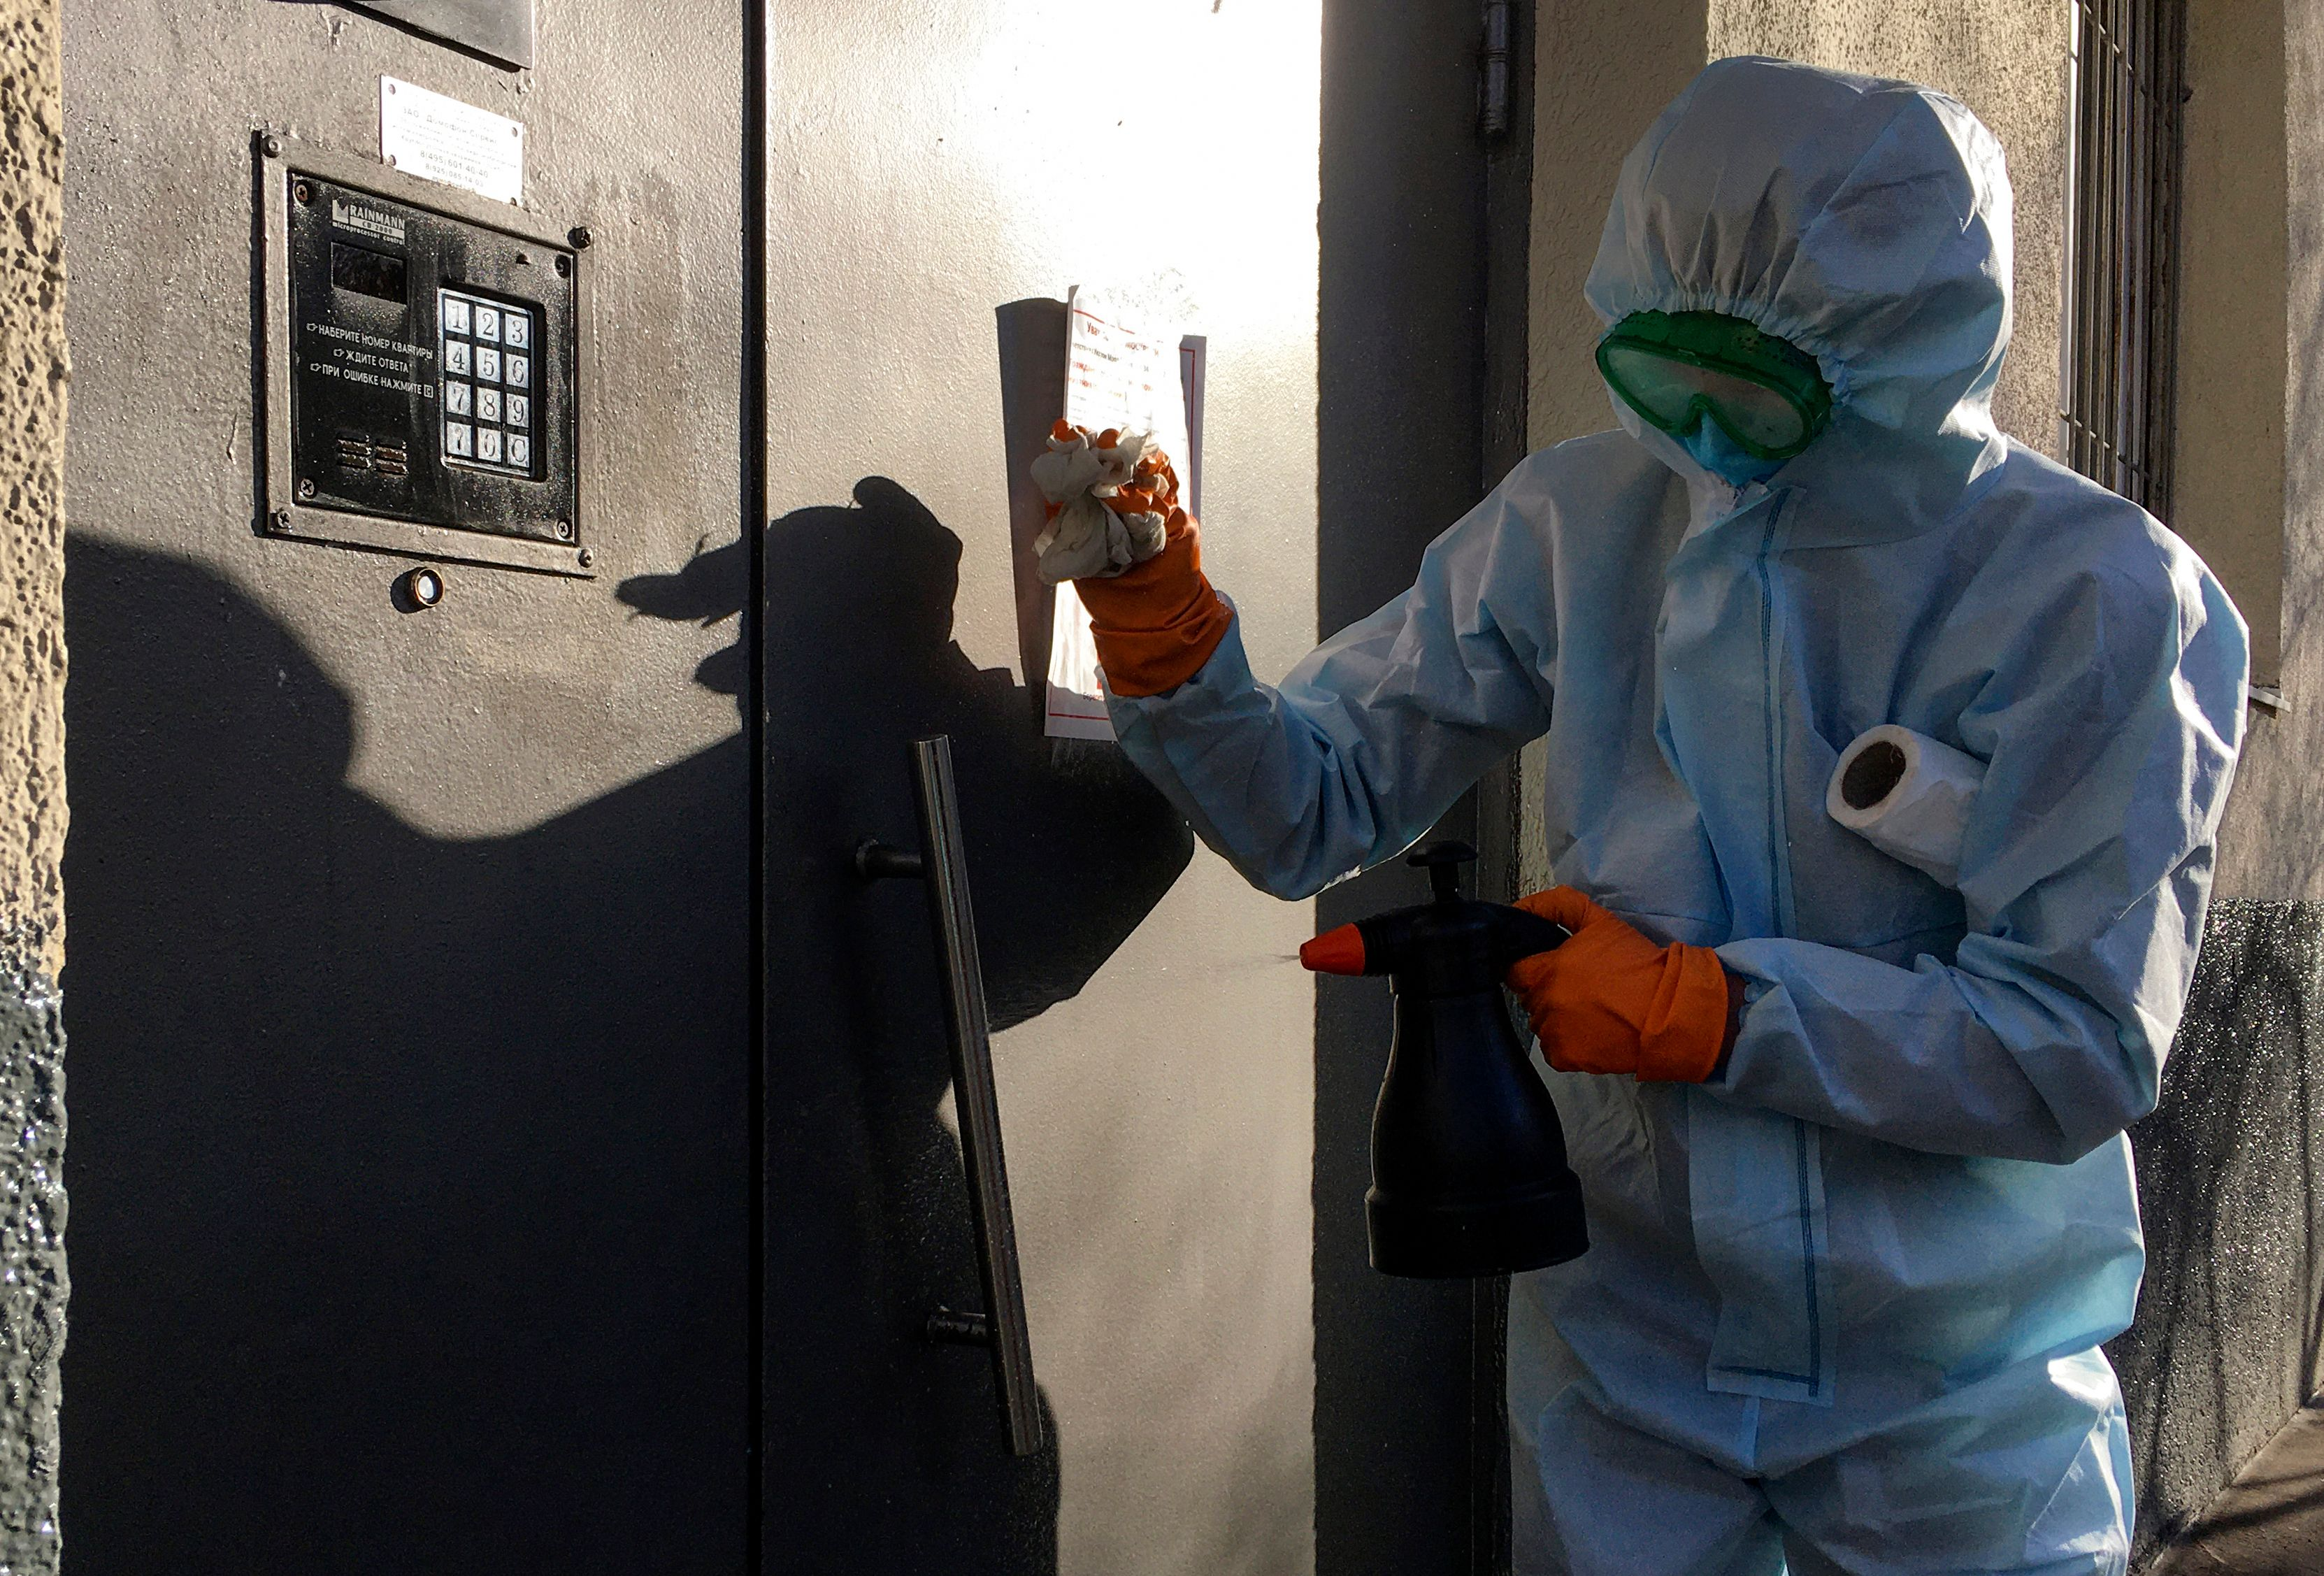 A communal worker sprays disinfectant on the door of a residential building in Moscow on April 11.